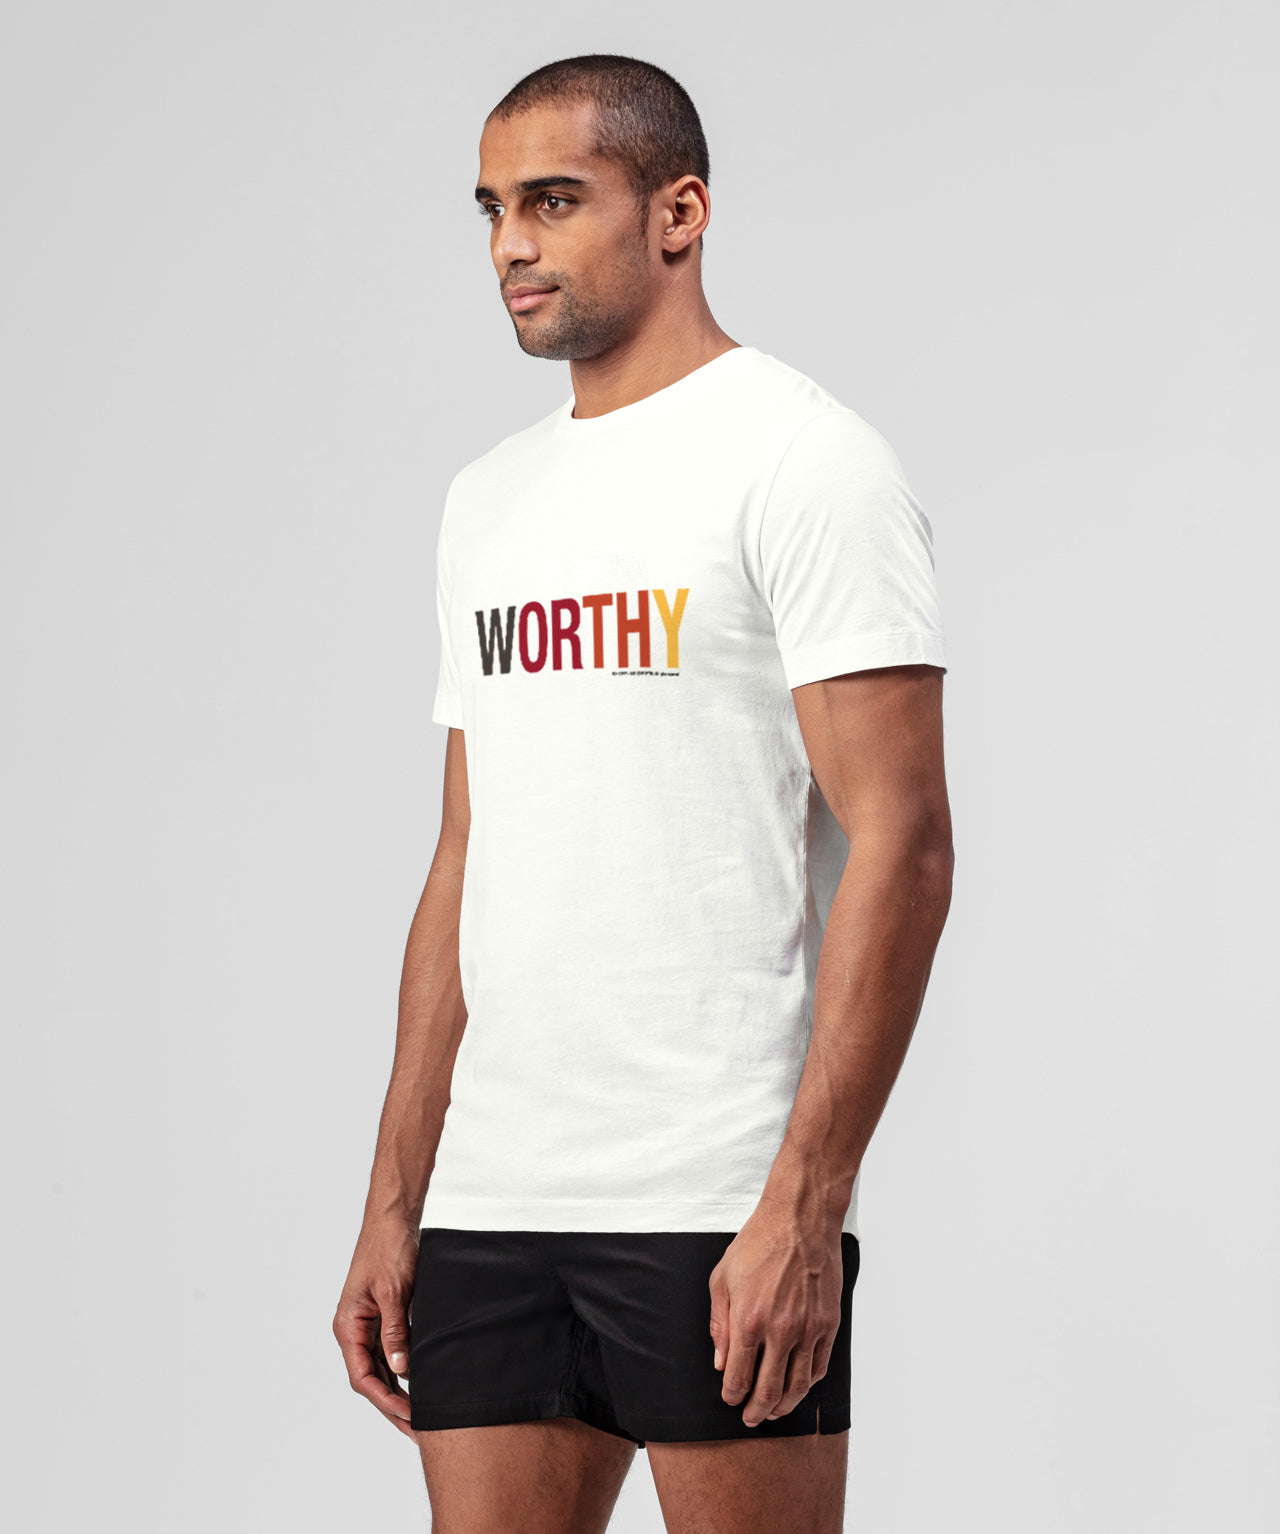 T-Shirt WORTHY - white